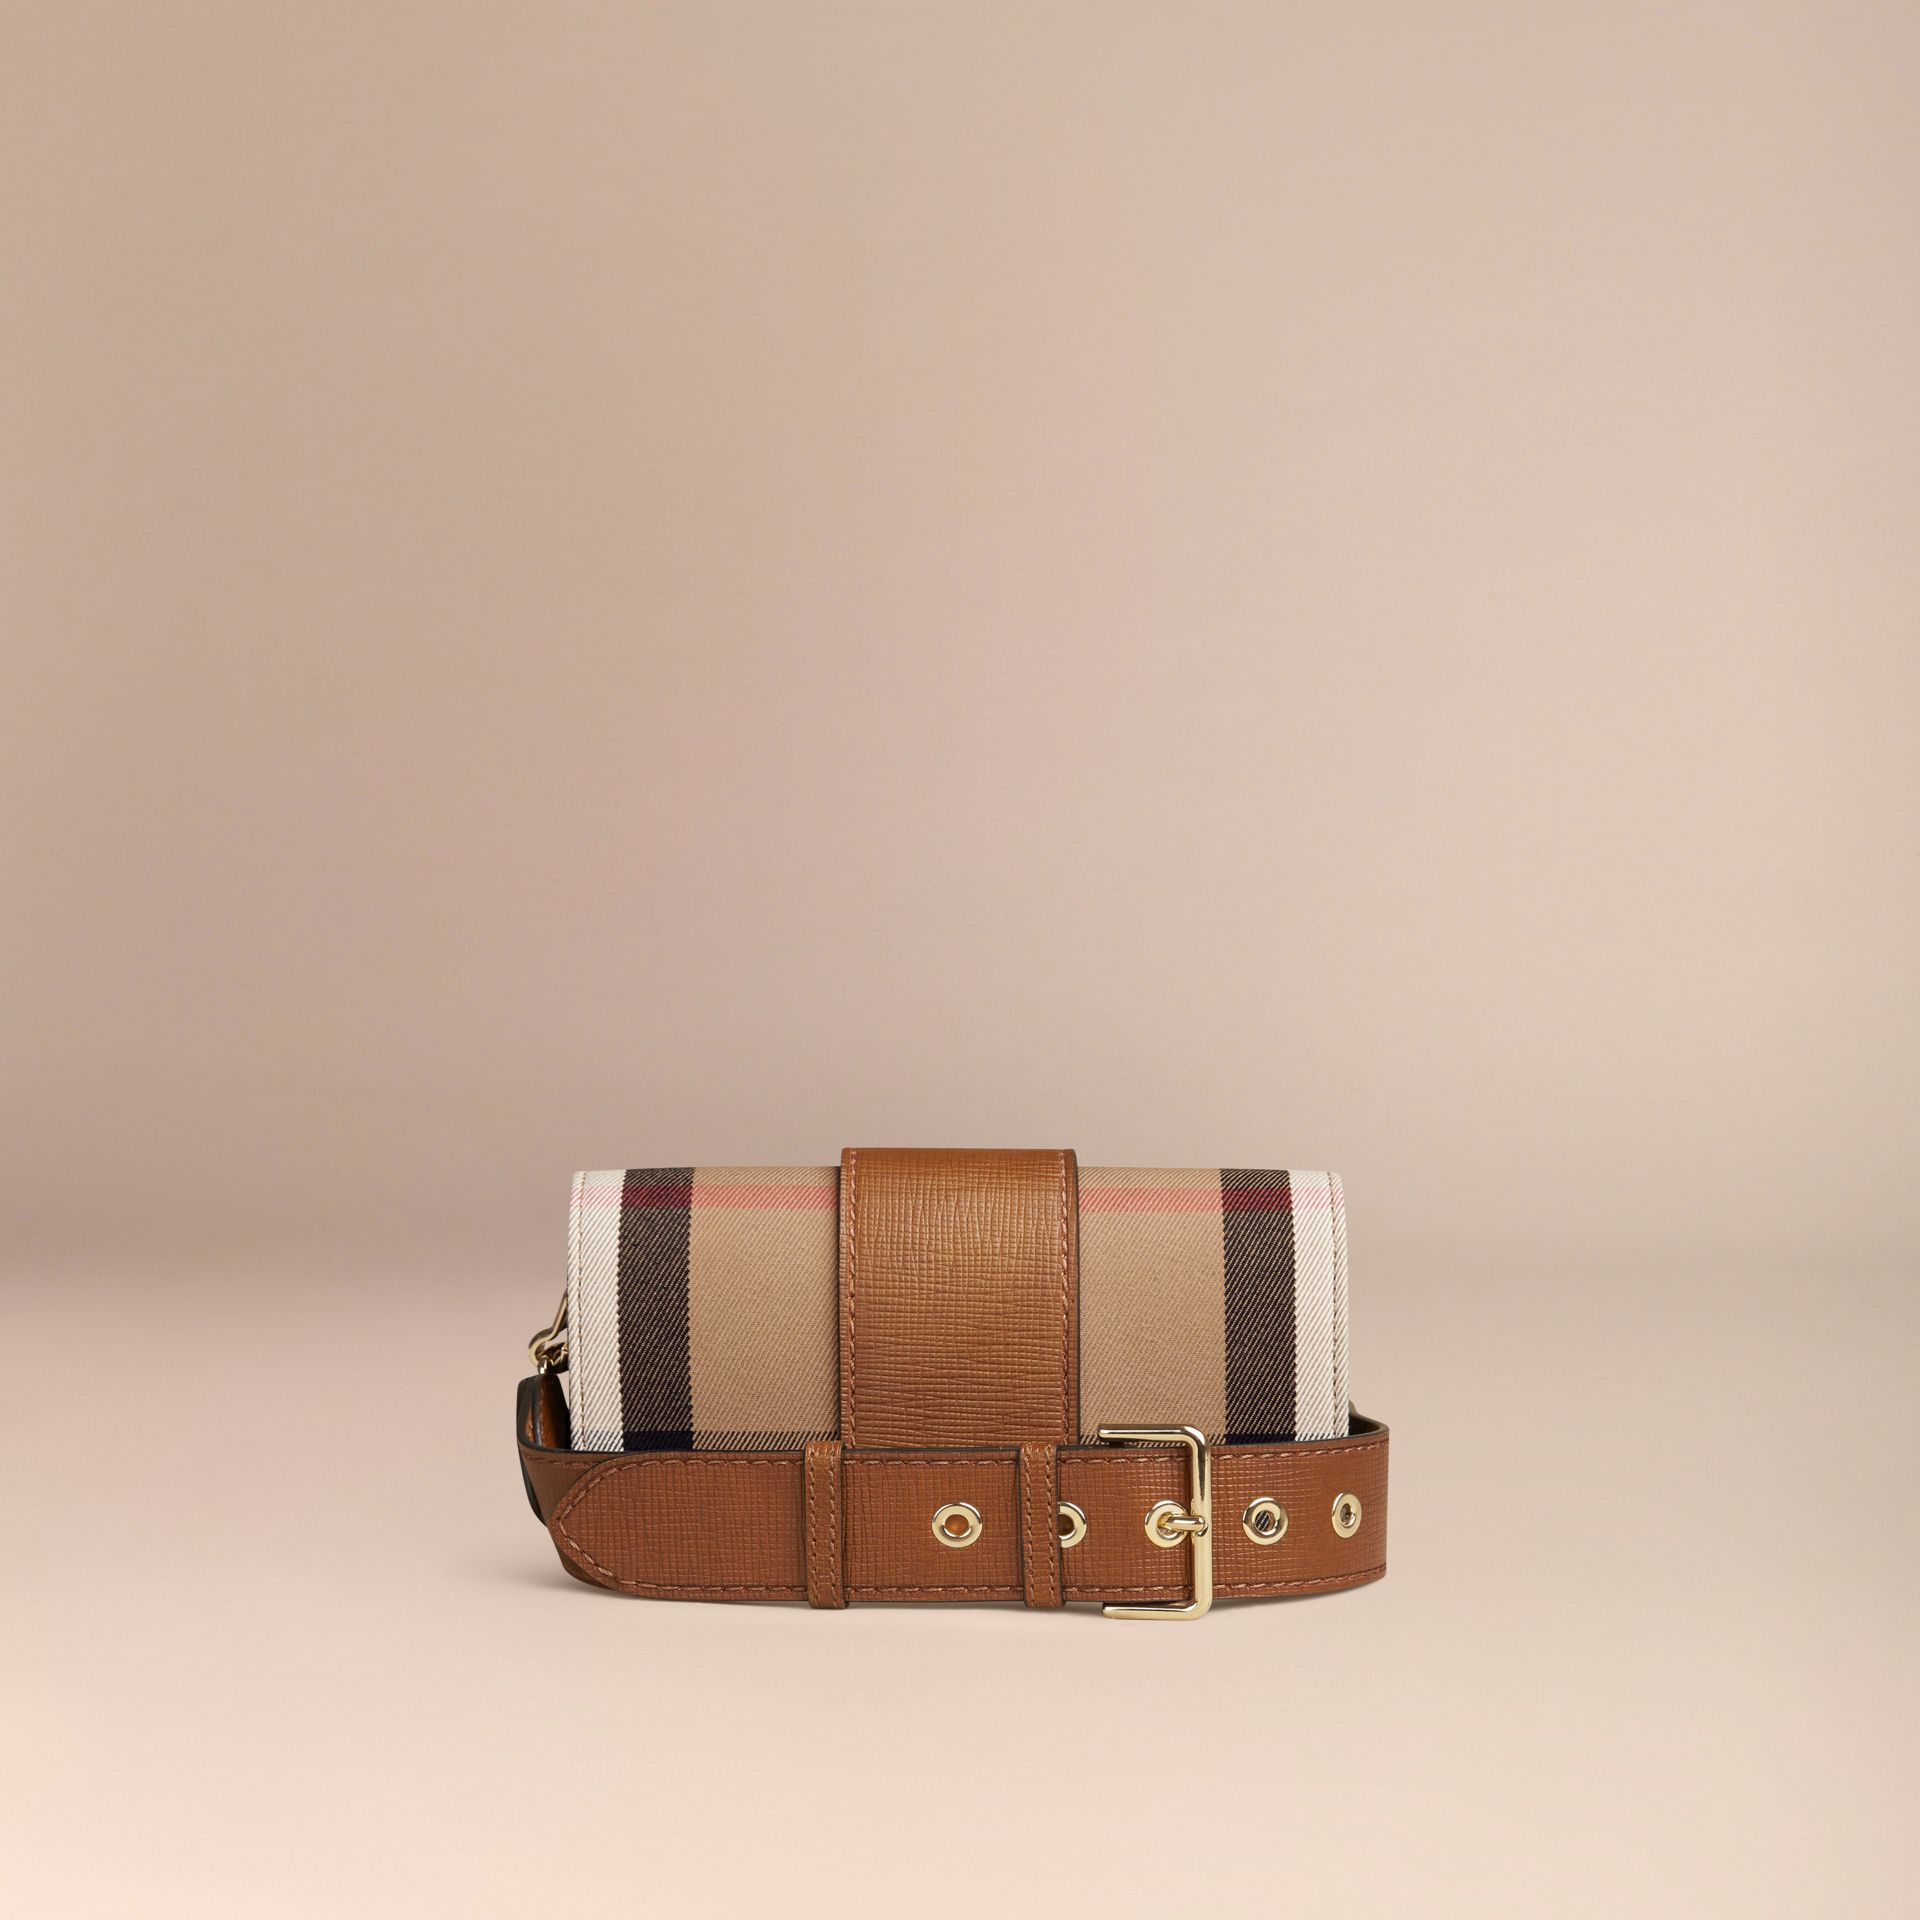 Tan The Small Buckle Bag in House Check and Leather Tan - gallery image 5